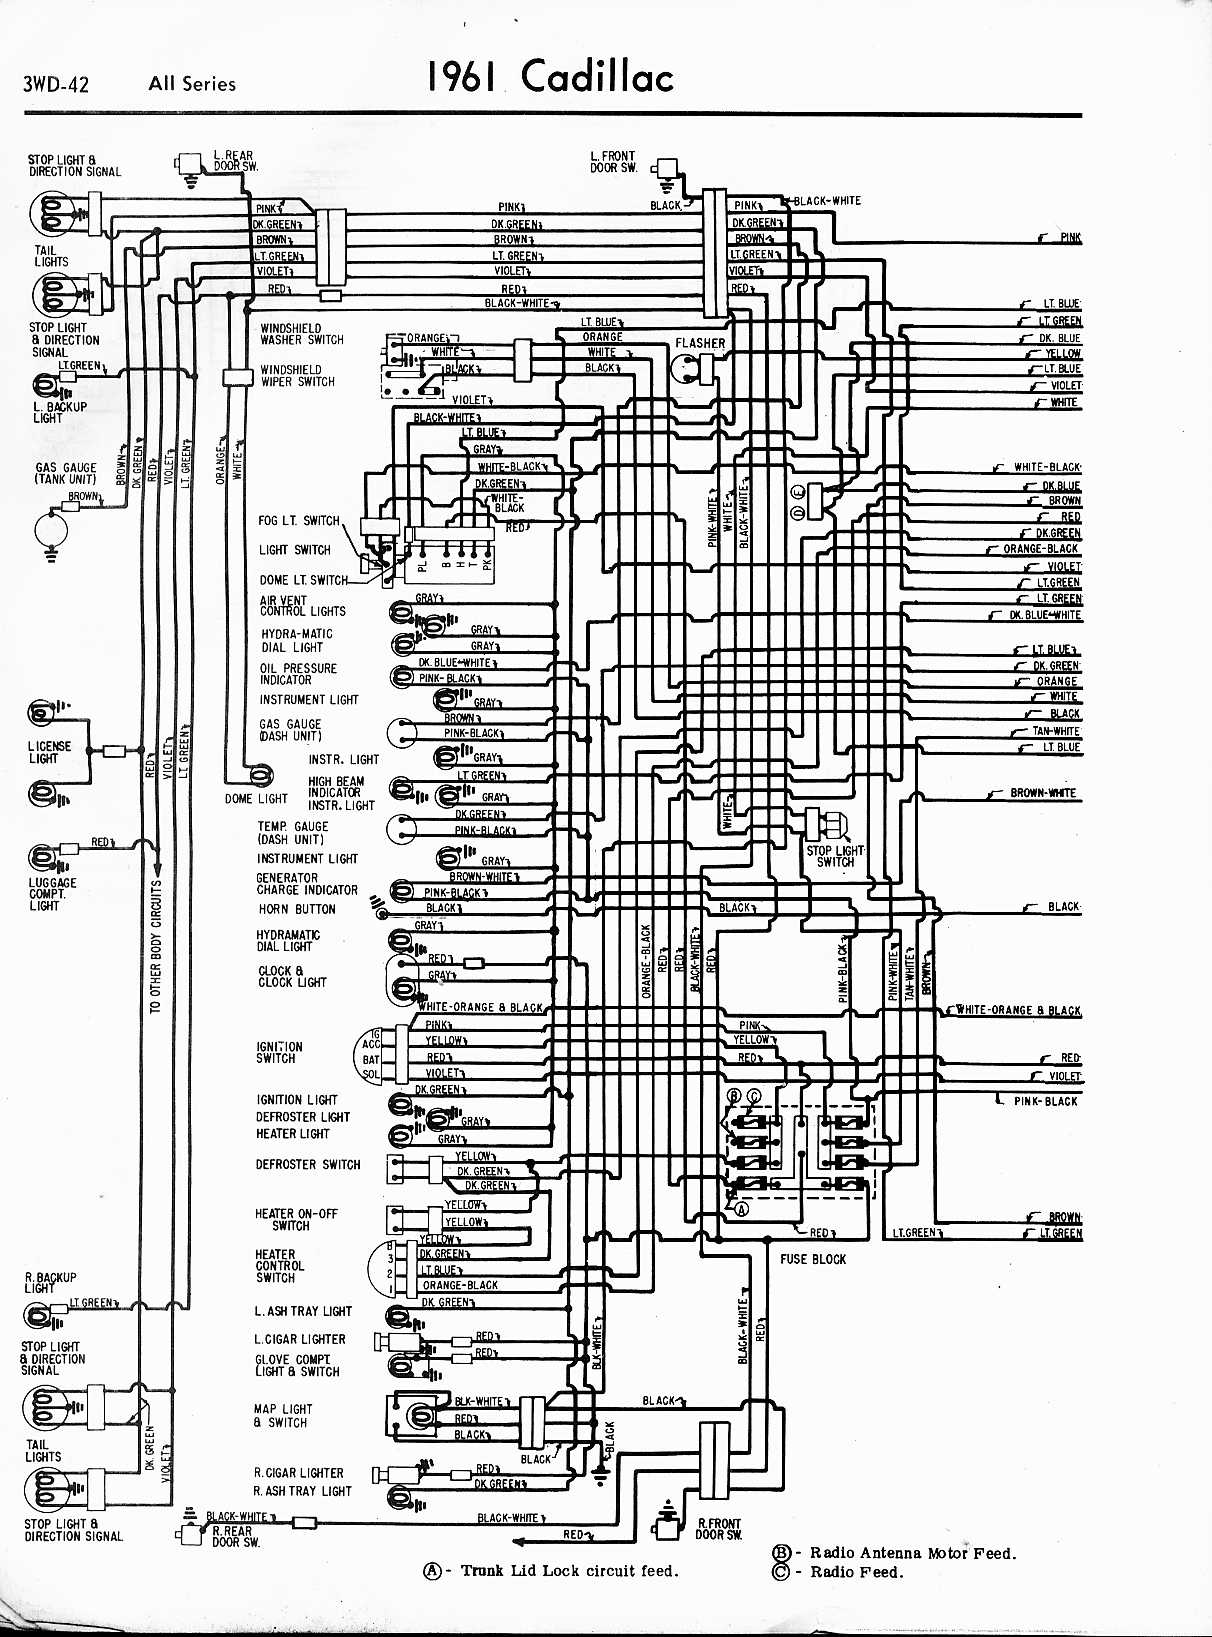 1959 Cadillac Power Seat Wiring Diagram Diagrams Ford 1961 Ignition Free Engine Image For Parts Lincoln